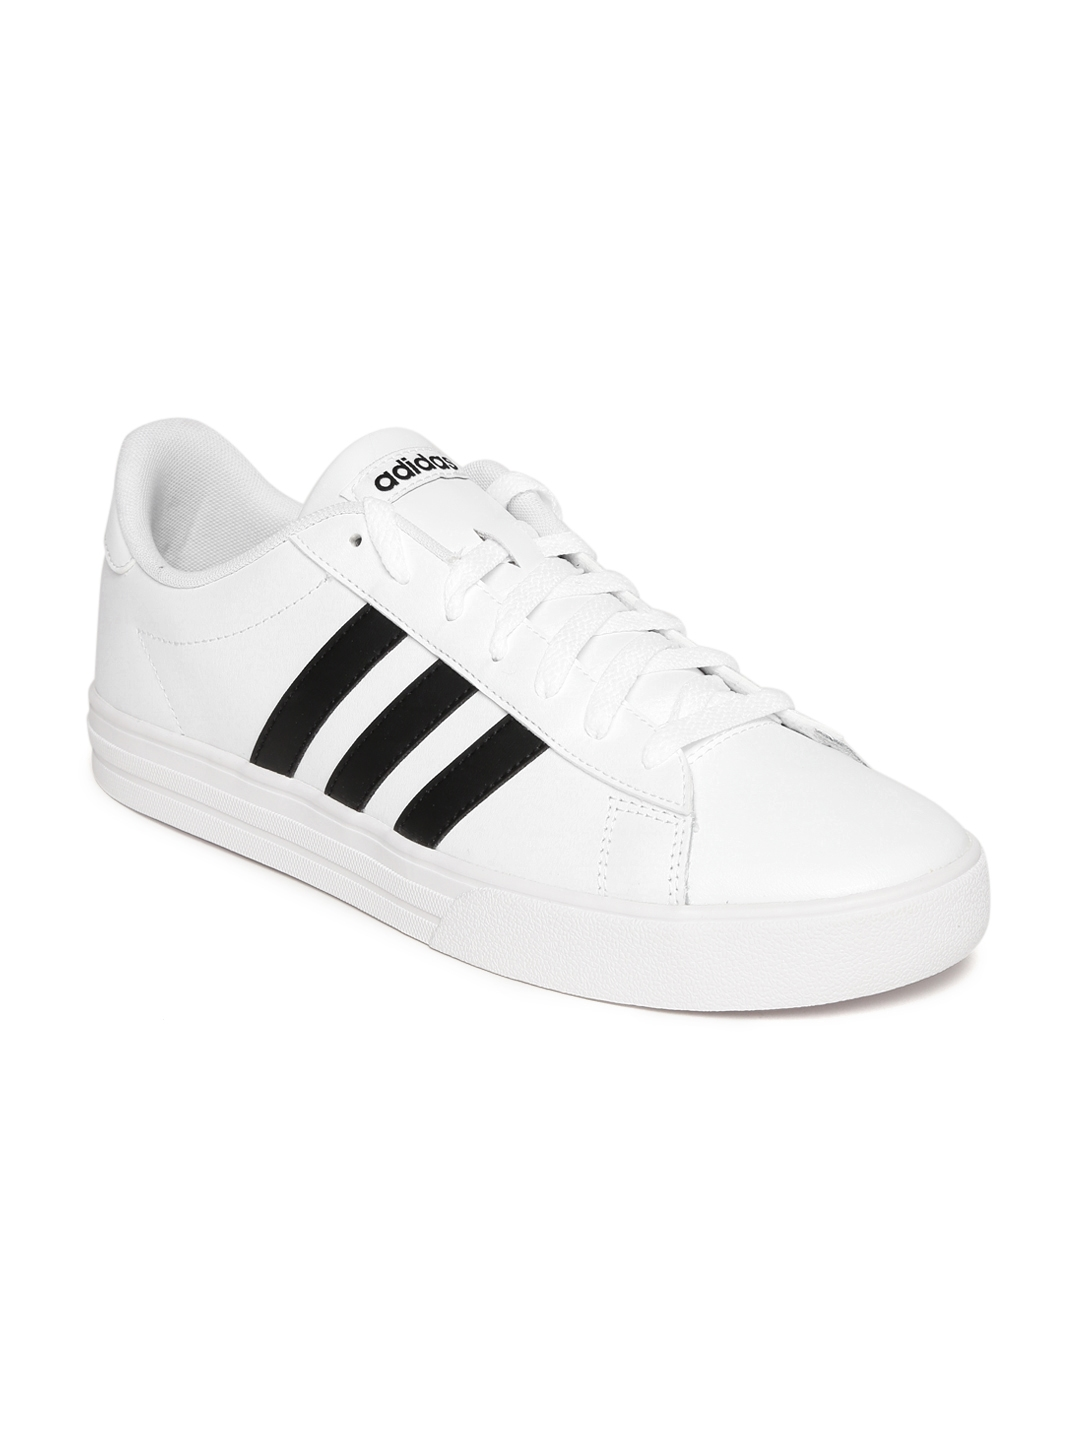 12627b4d58d1 Buy ADIDAS Men White DAILY 2.0 Leather Sneakers - Casual Shoes for ...